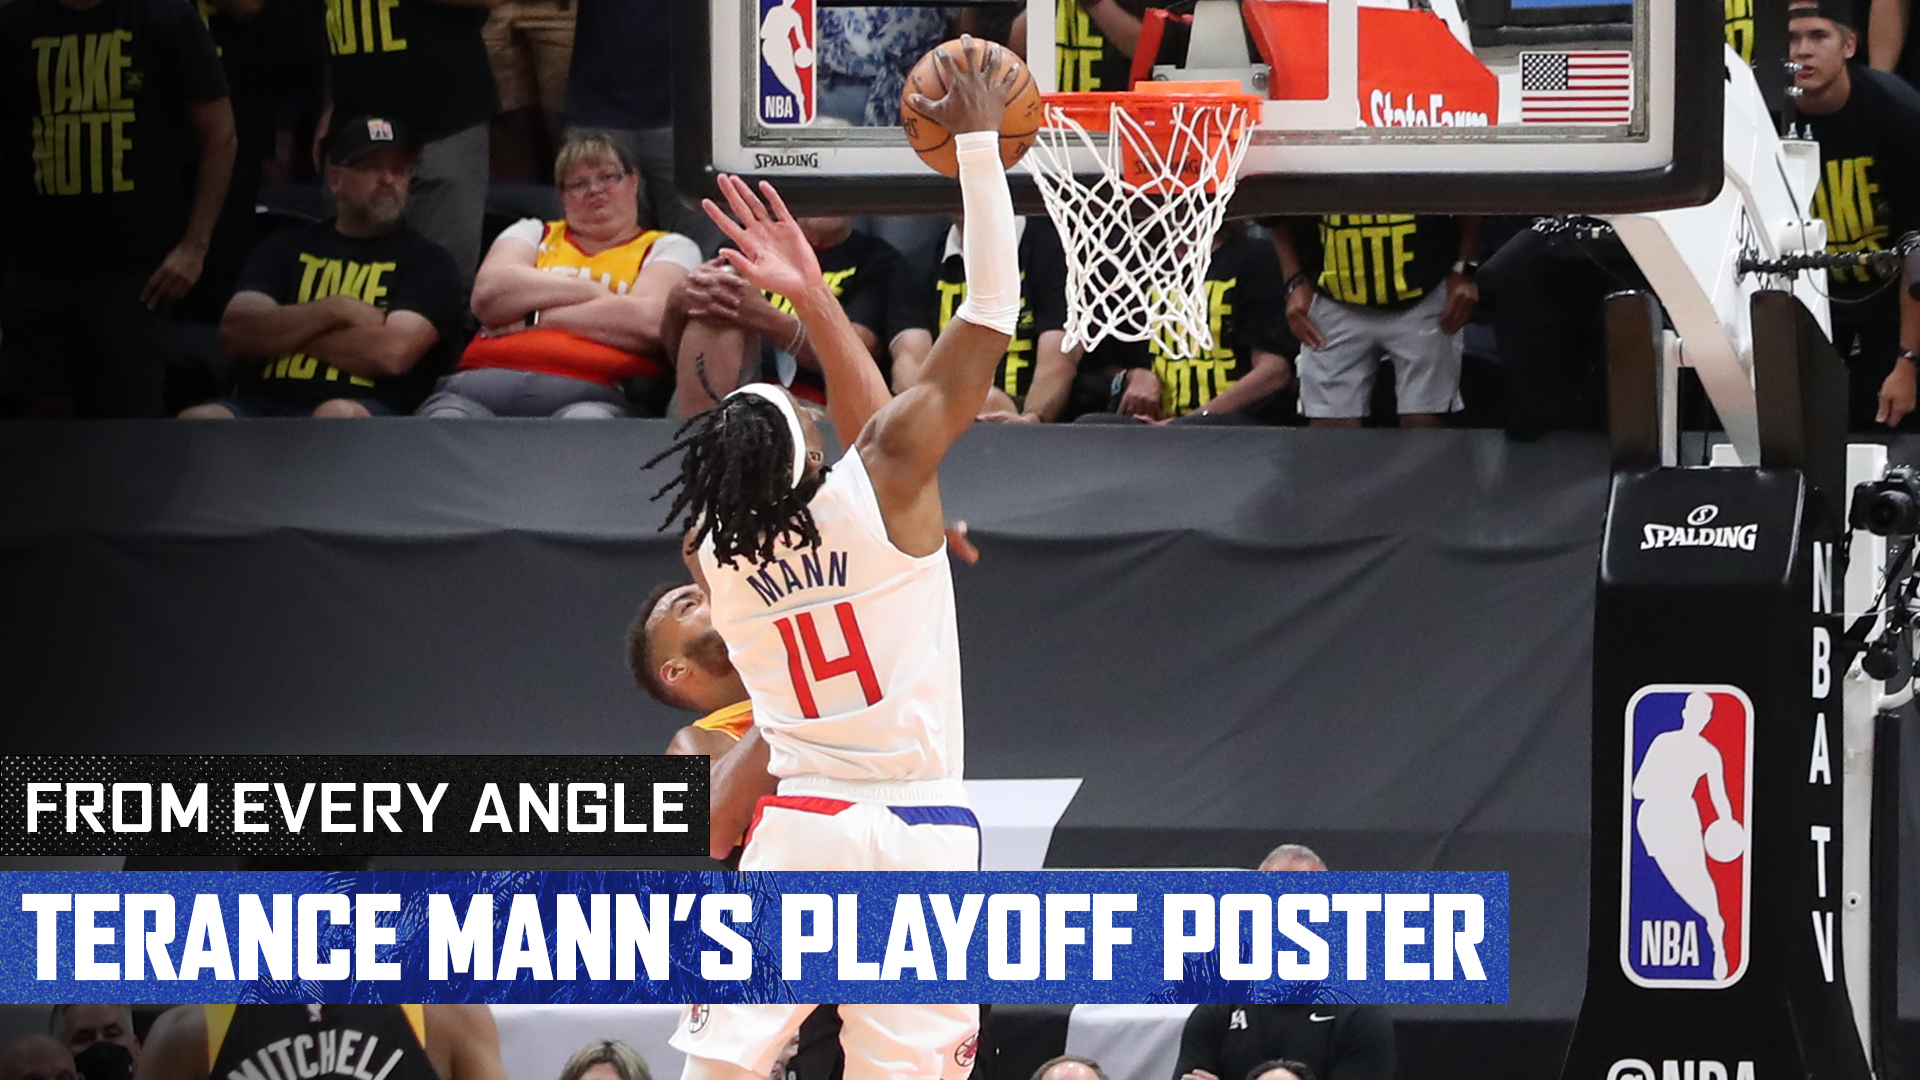 From Every Angle | Terance Mann's Playoff Poster (6.16.21)